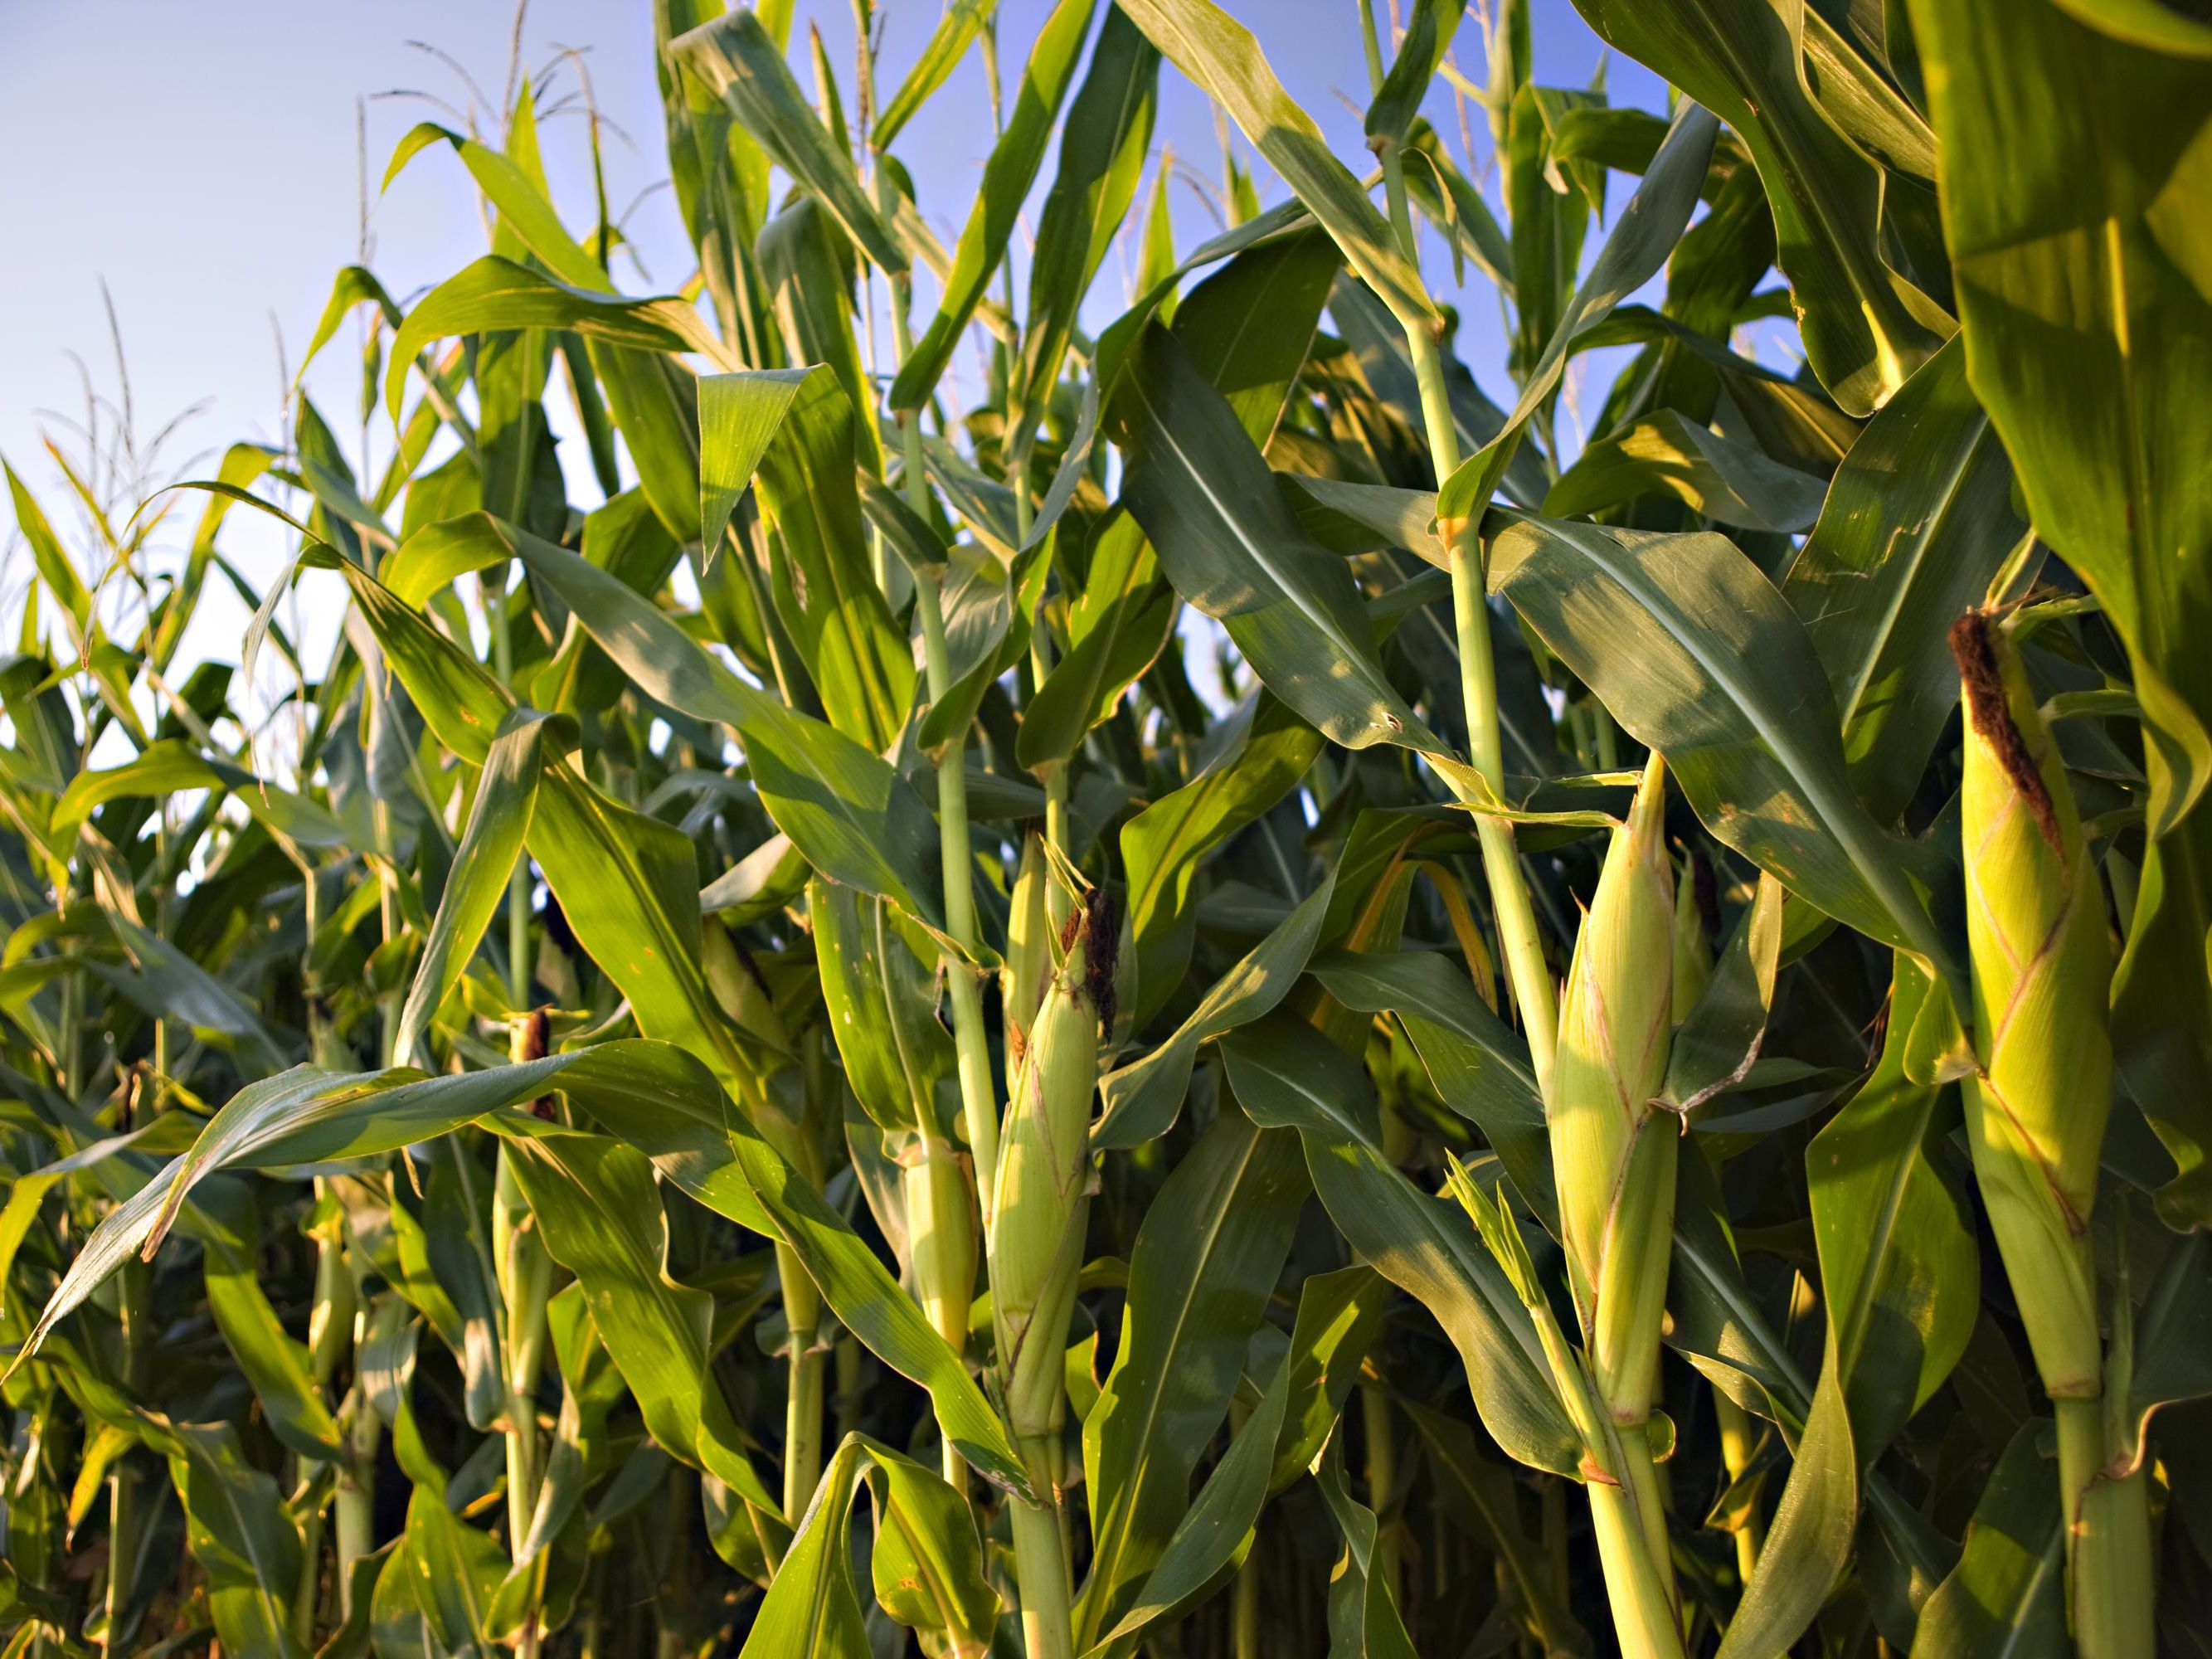 Corn Crop Planting And Harvest Seasons